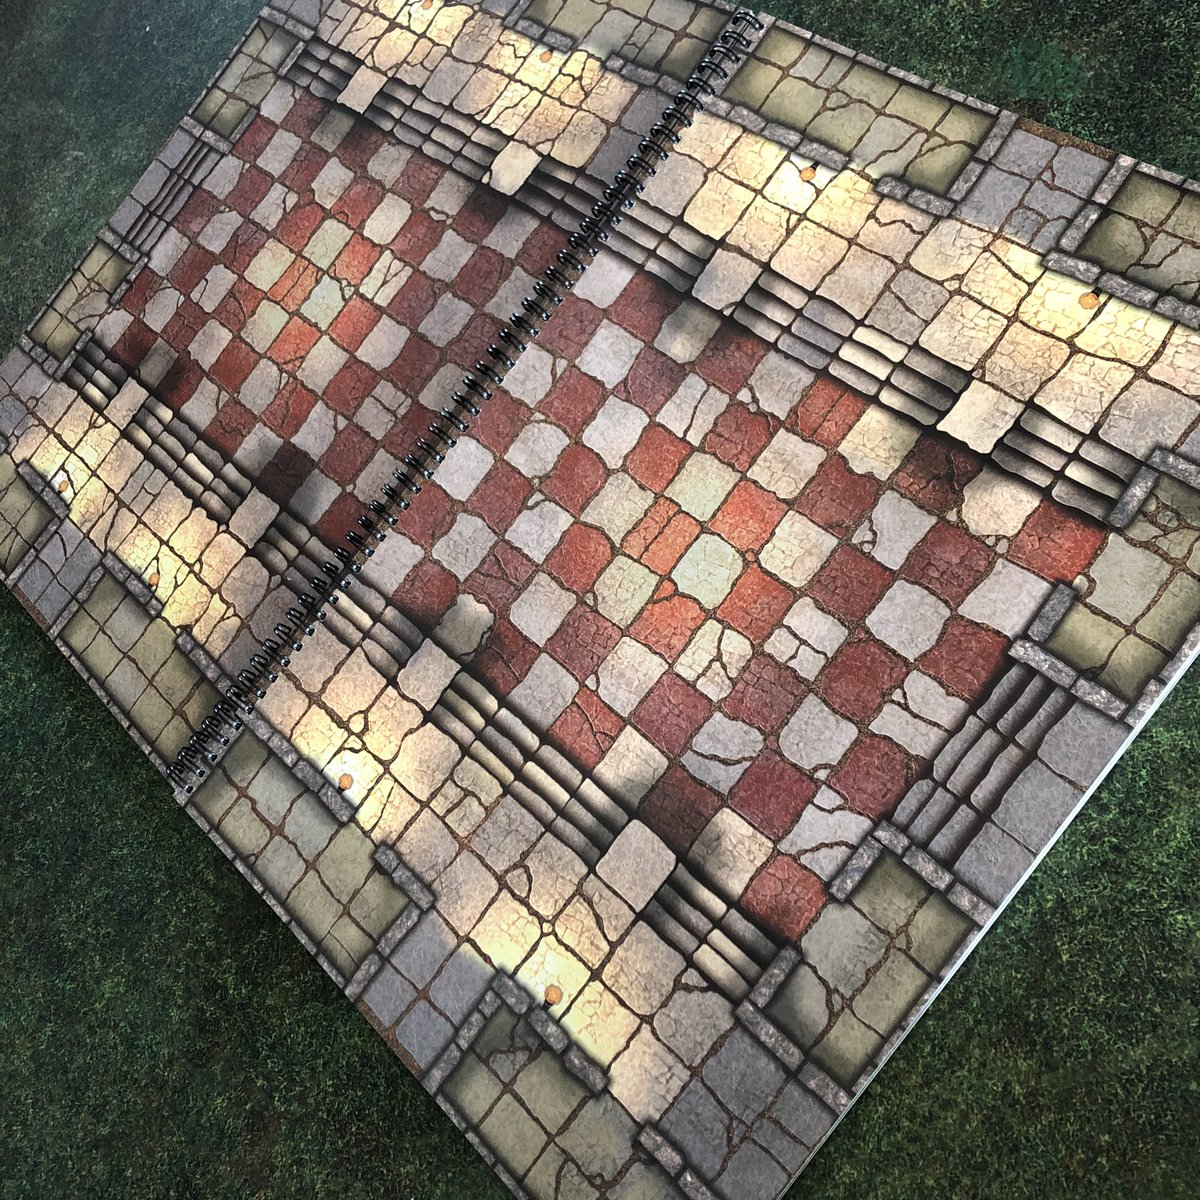 The Great Hall awaits the coming adventure! The Giant Book of Battle Mats Volume 2 is available October 1    from your FLGS or favourite online retailer or https://t.co/7VmIuPXADY #dnd #lokebattlemats #dungeonsanddragons #rpg #ttrpg #battlemap https://t.co/GmD5XH1UfC